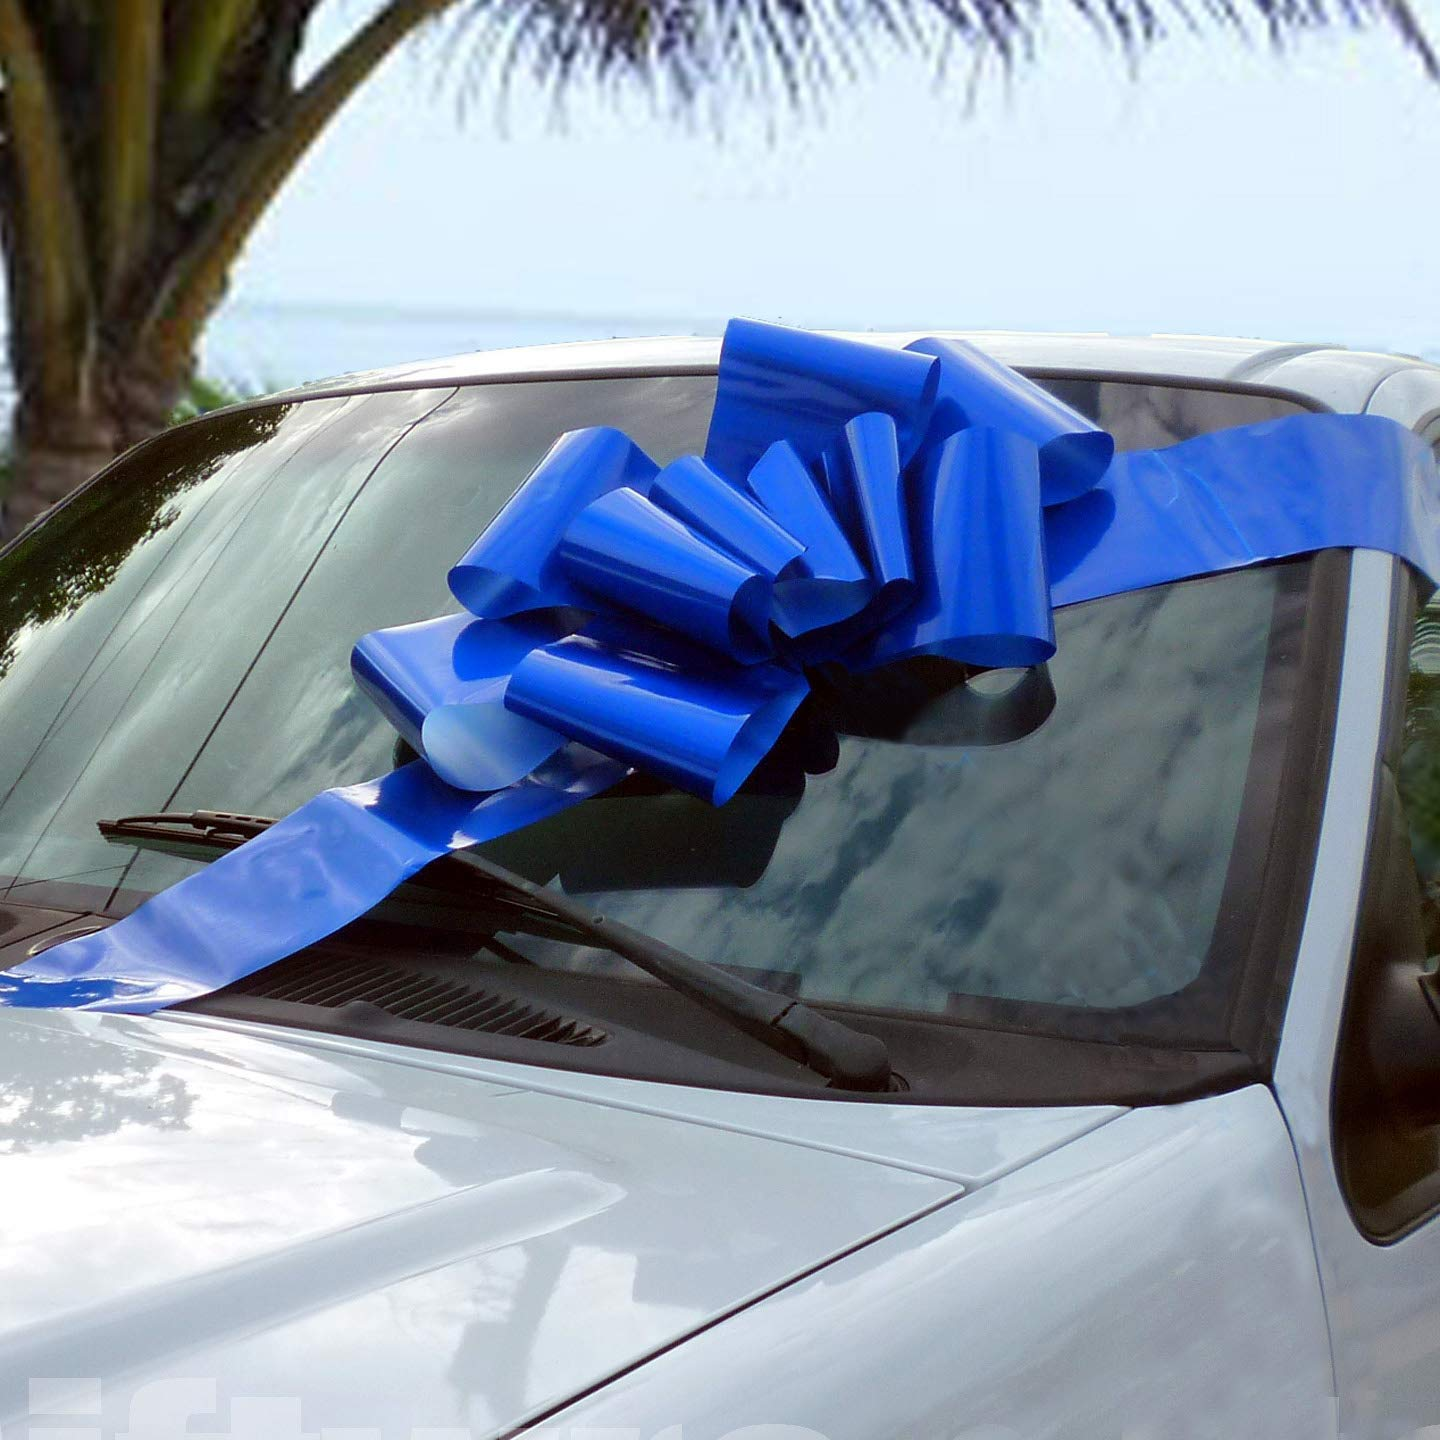 "Big Royal Blue Car Bow - Large Ribbon Gift Decoration, Fully Assembled, 25"" Wide, Christmas, Birthday, Graduation"